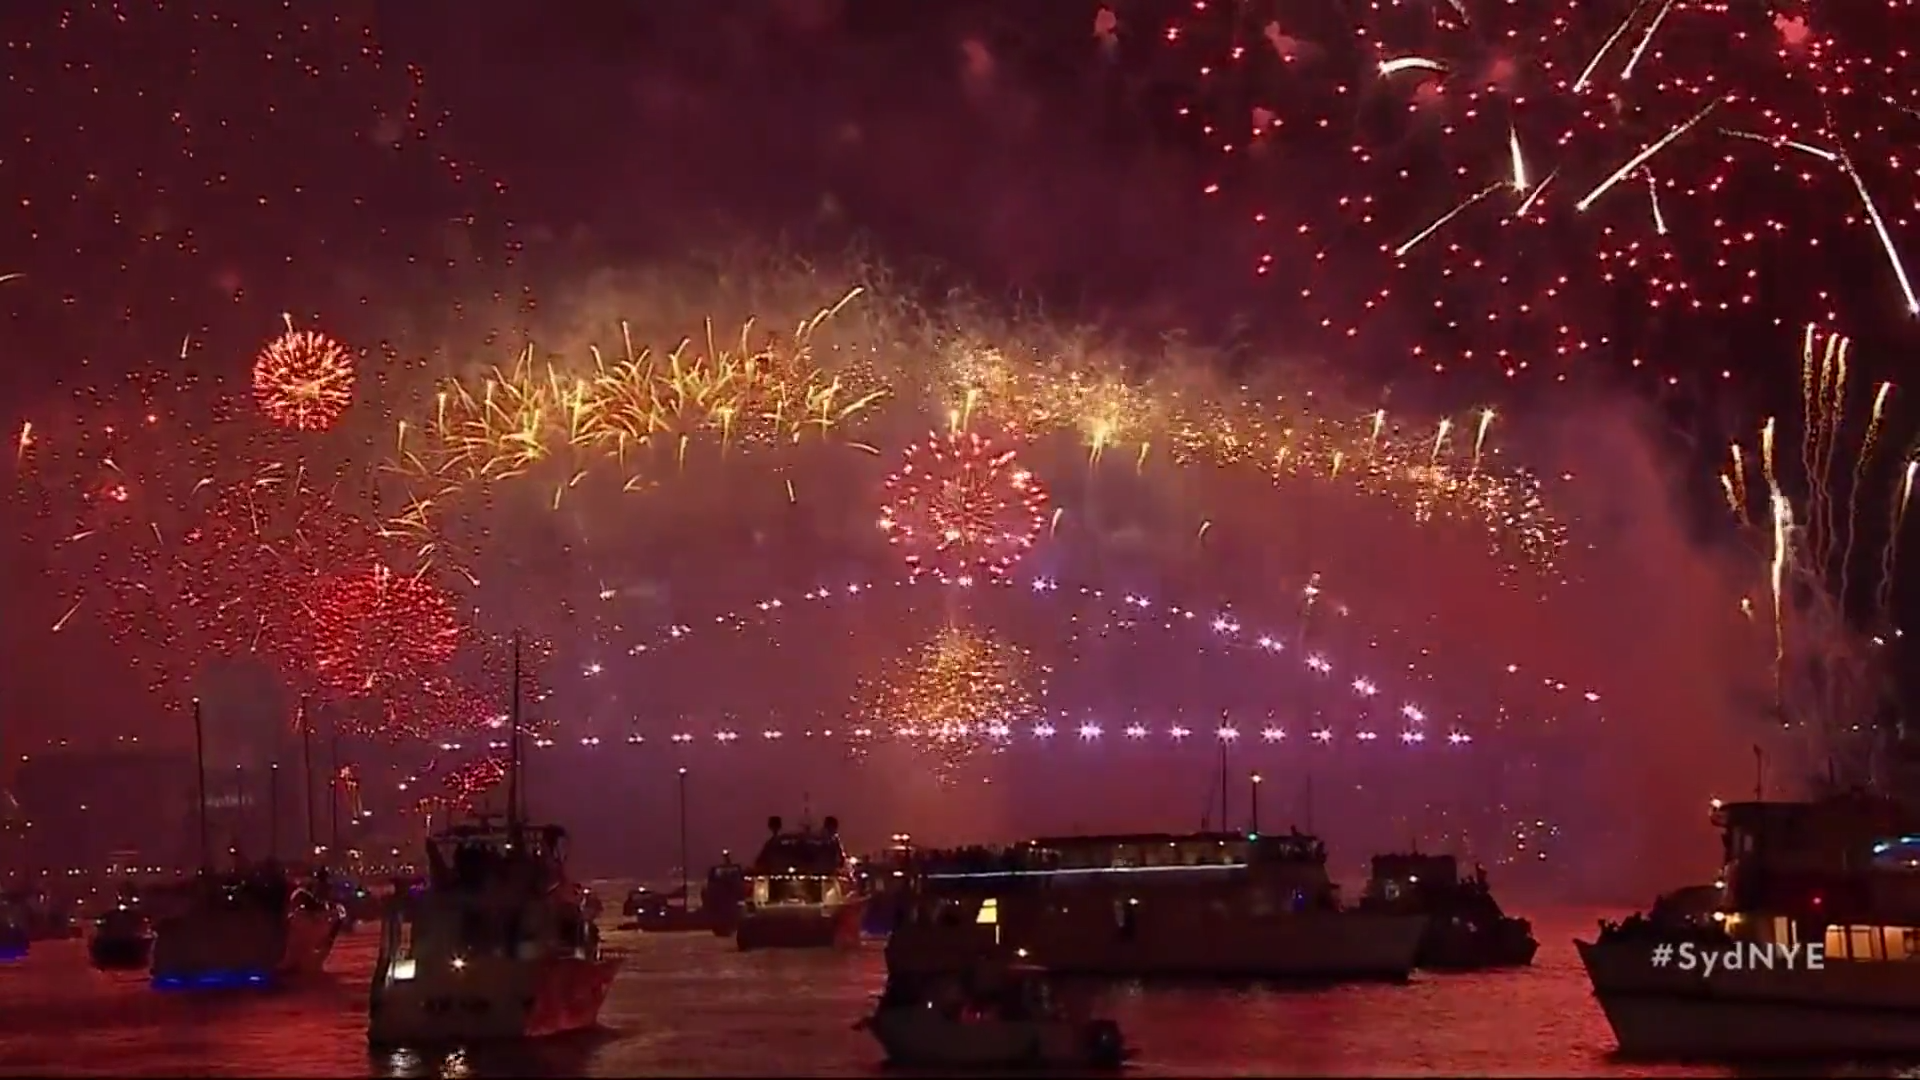 XjtSttCQQvn image 1920x1080 - Sydney NYE fireworks to go ahead despite calls to spend money on fighting wildfires – Channel 4 News